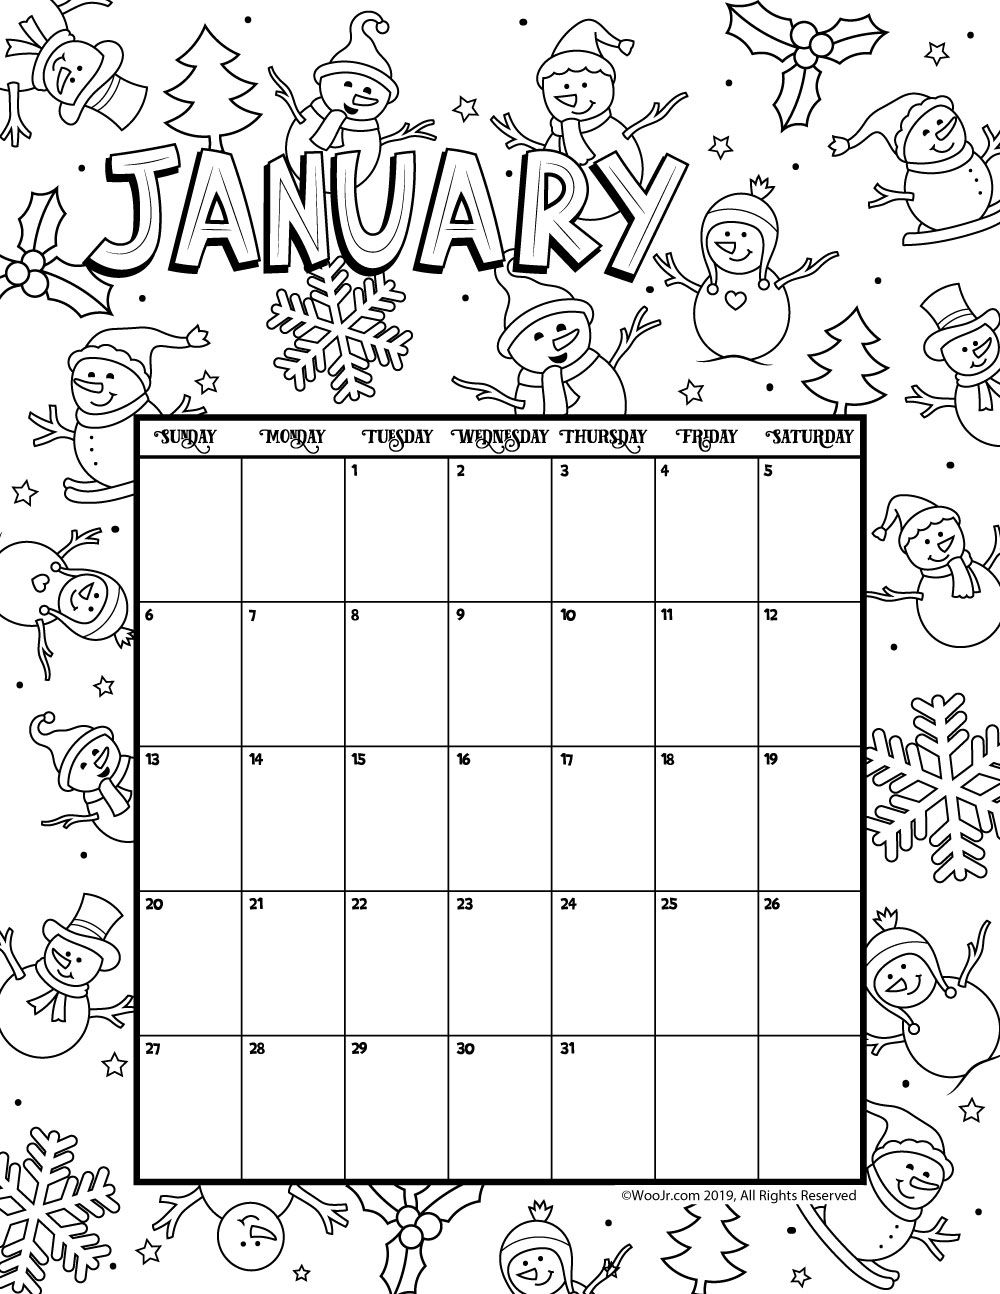 January 2019 Coloring Calendar Young Women 39 s Calendar